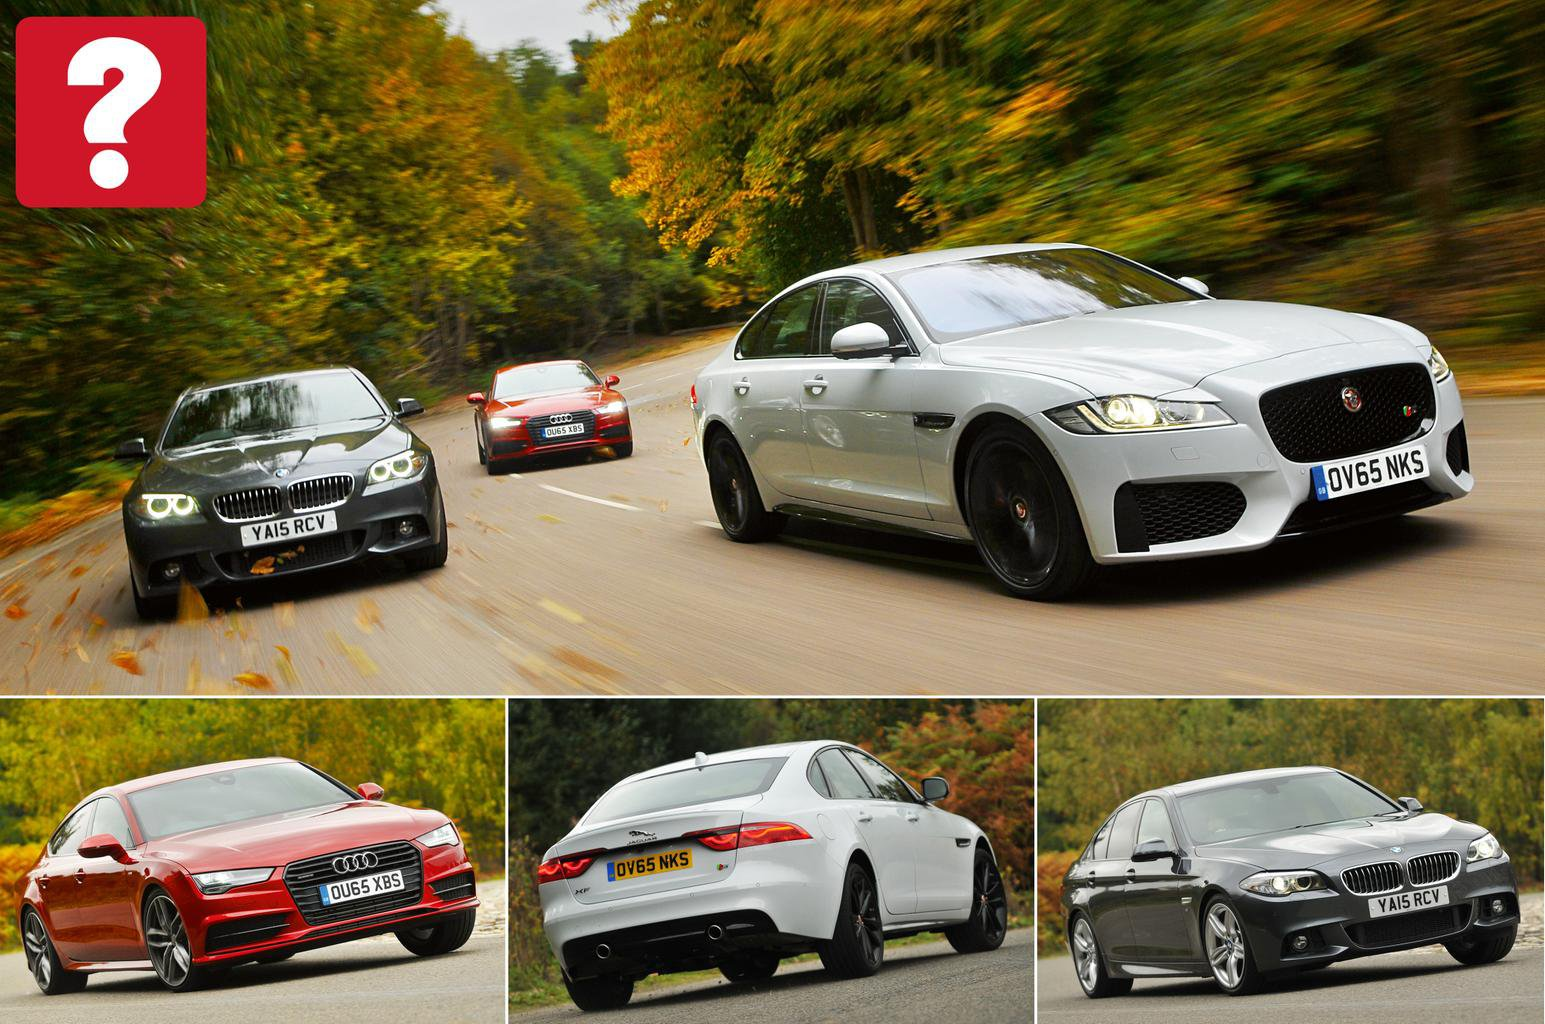 New Jaguar XF vs Audi A7 Sportback vs BMW 5 Series